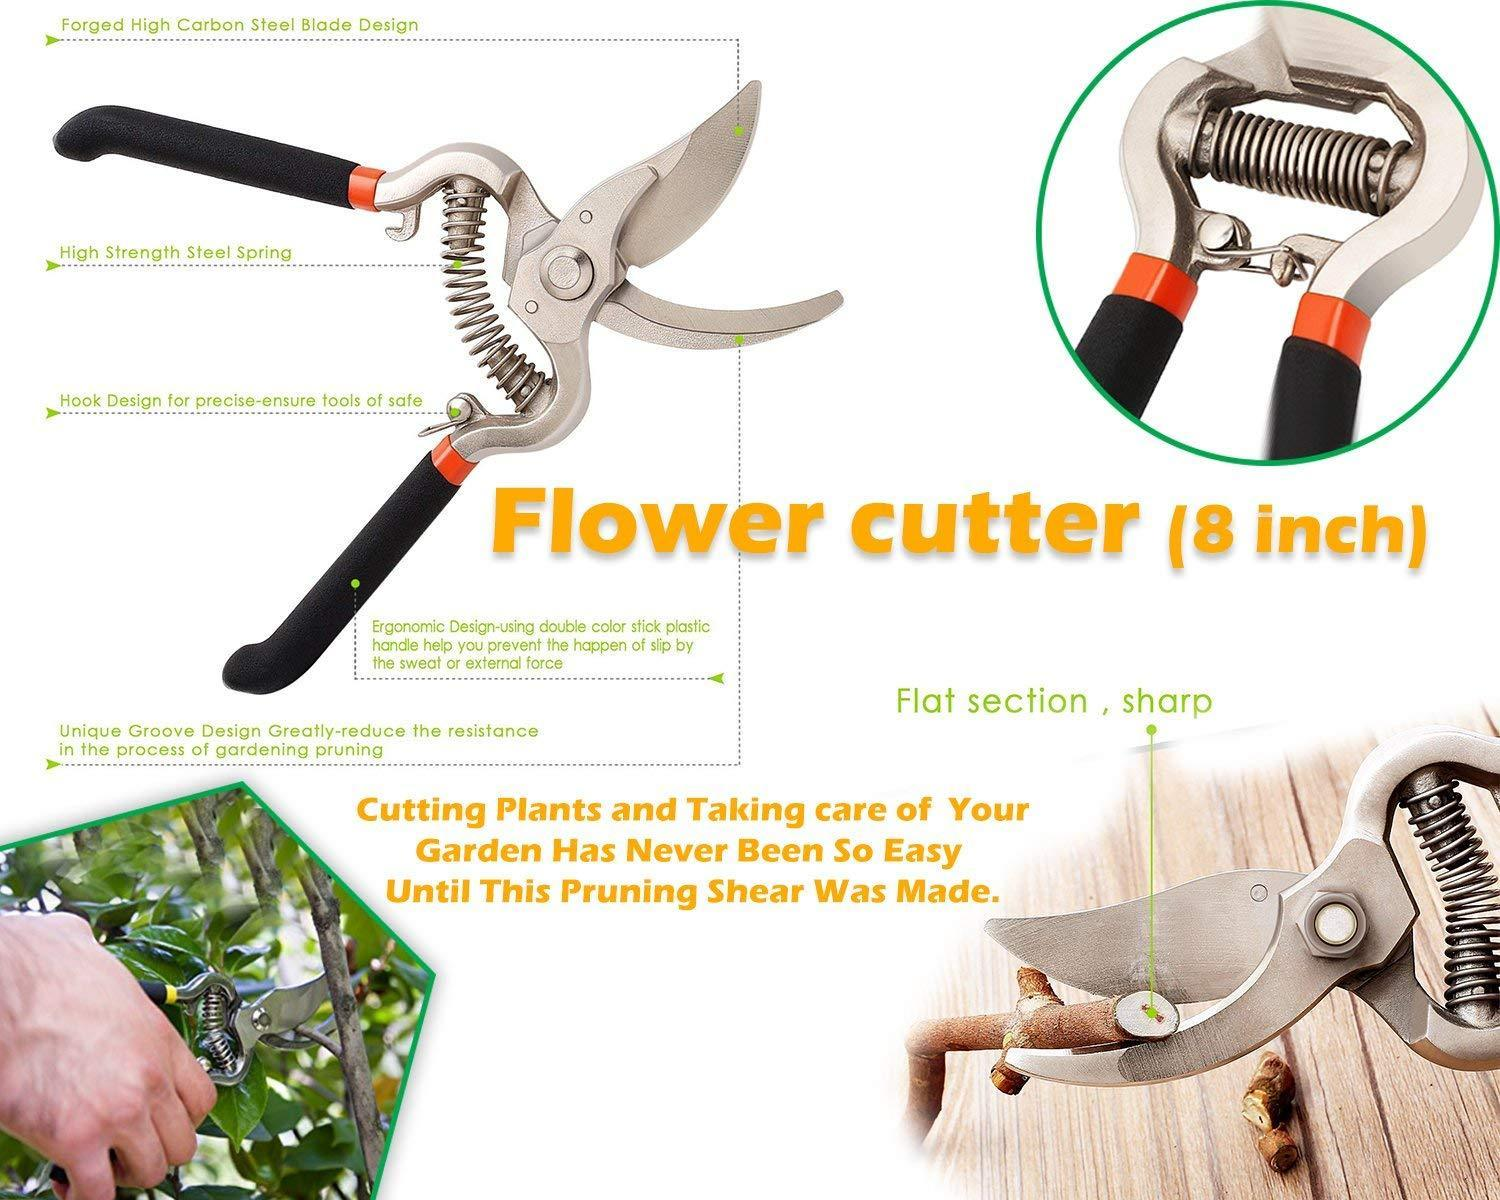 Gonowtoday Gardening Tools - Flover Cutter & Garden Tool Wooden Handle (3pcs-Hand Cultivator, Small Trowel, Garden Fork)